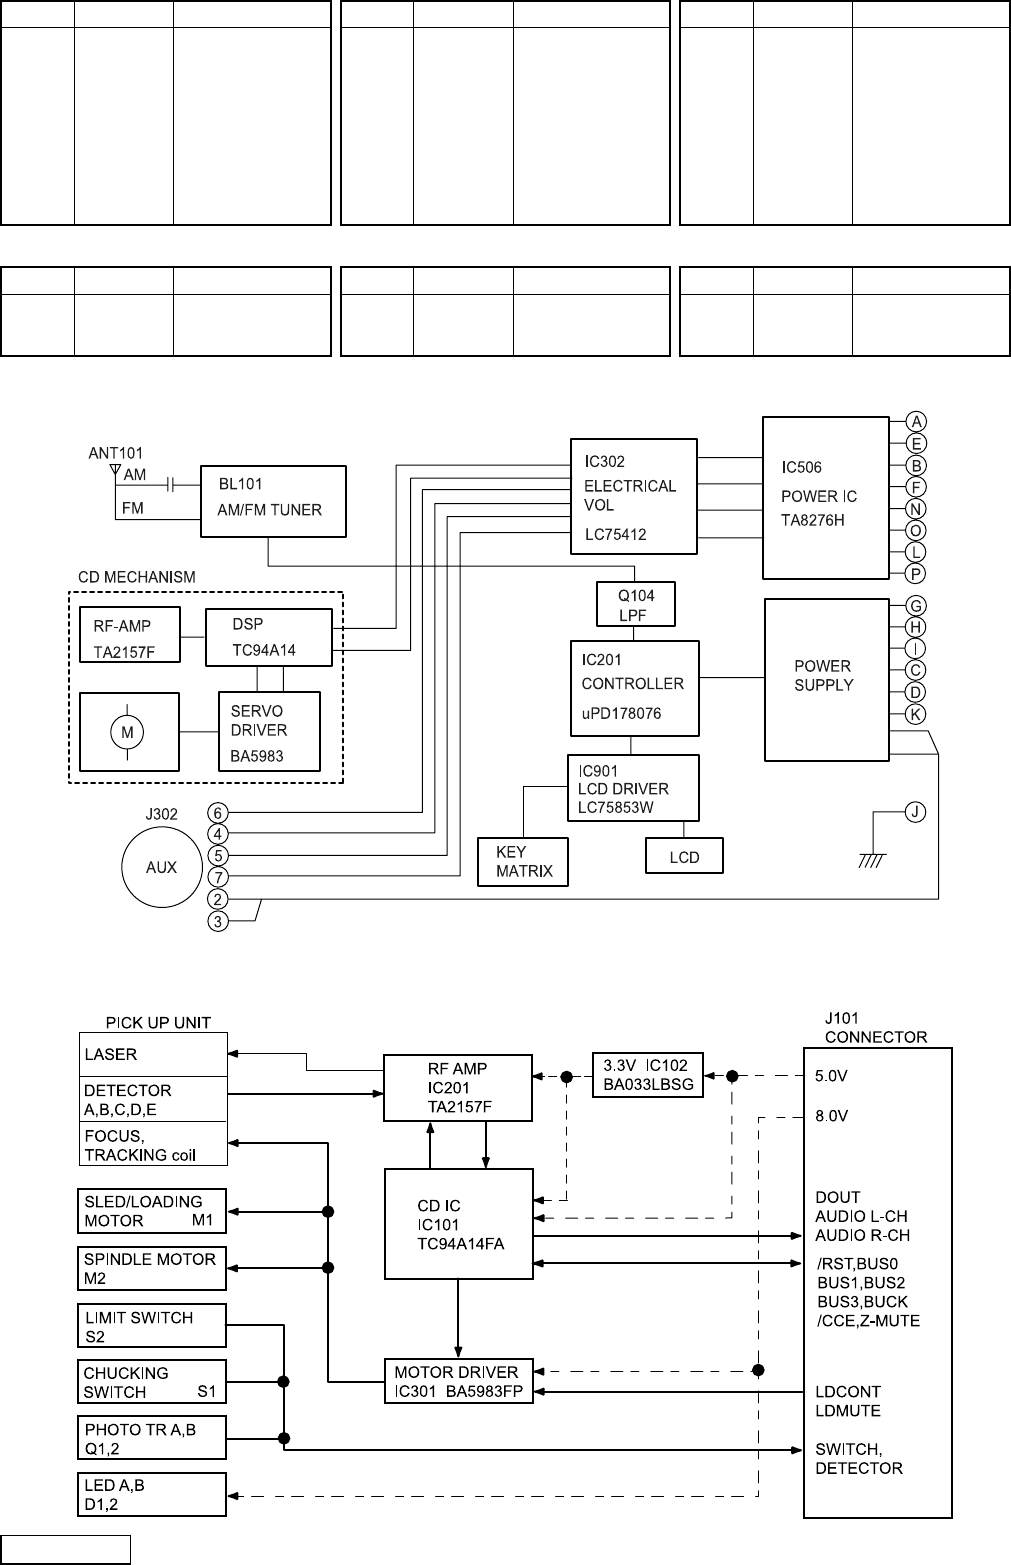 Clarion Cz100 Wiring Diagram: Delighted Clarion Cz100 Wiring Diagram Swc Pictures Inspiration ,Design